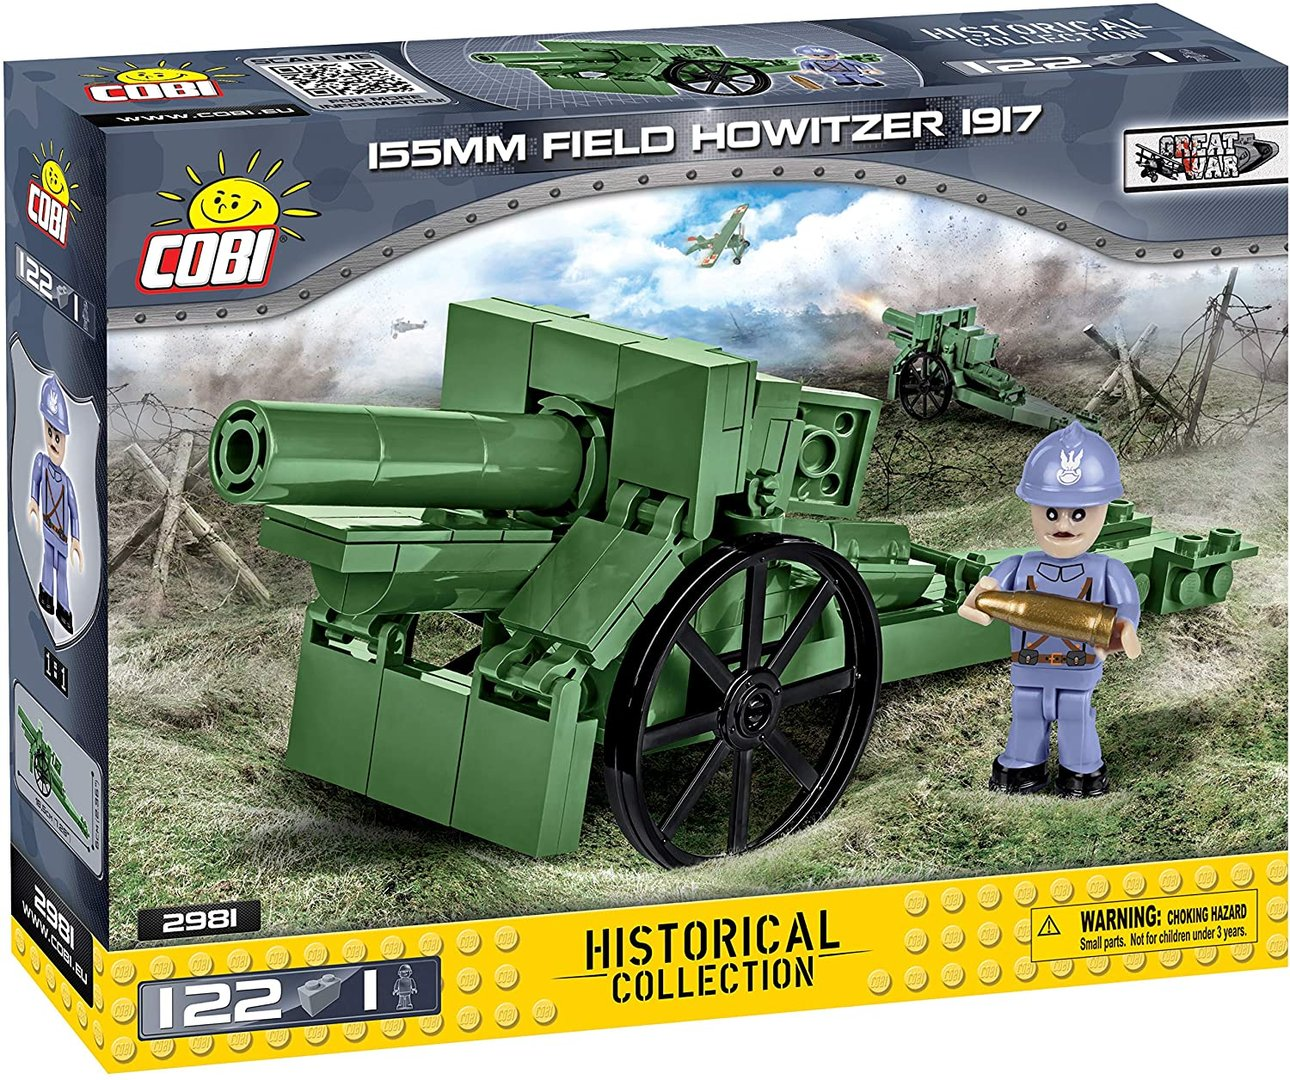 Cobi 2981 155mm Field Howitzer 1917 (Historical Collection)